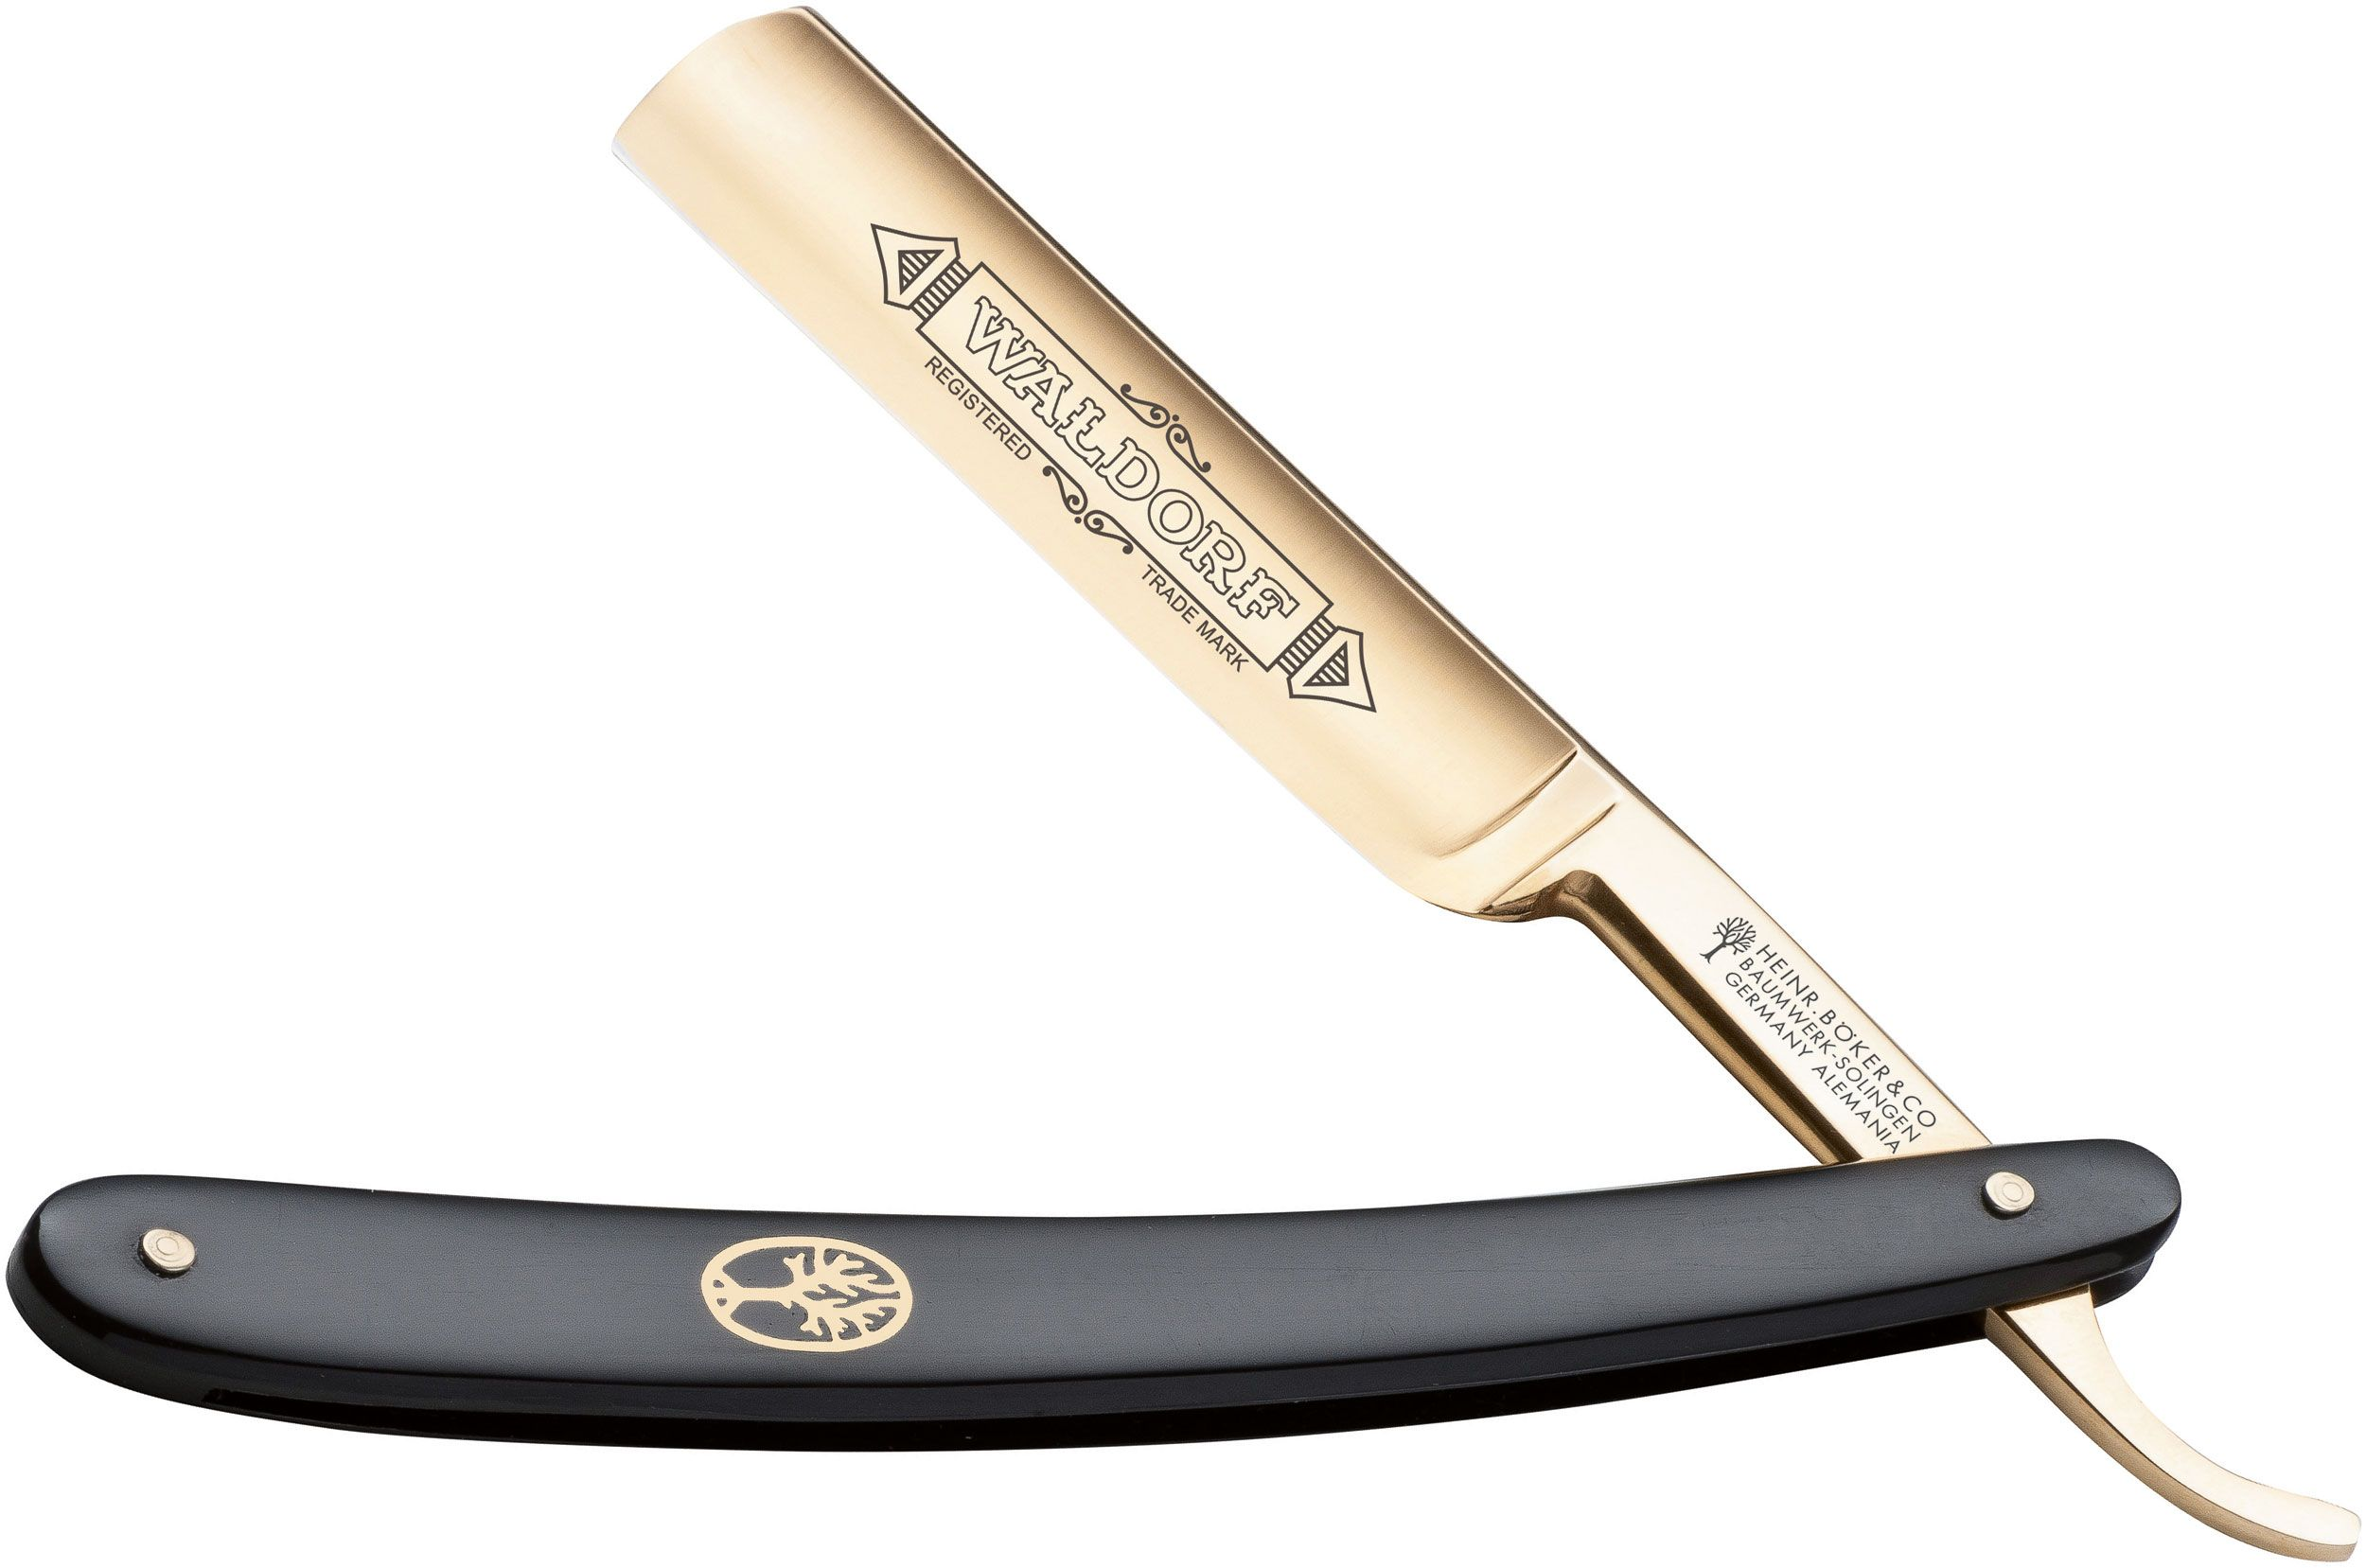 Boker Waldorf 24K Gold Straight Razor 5/8 inch Carbon Steel Blade, Black Synthetic Handles